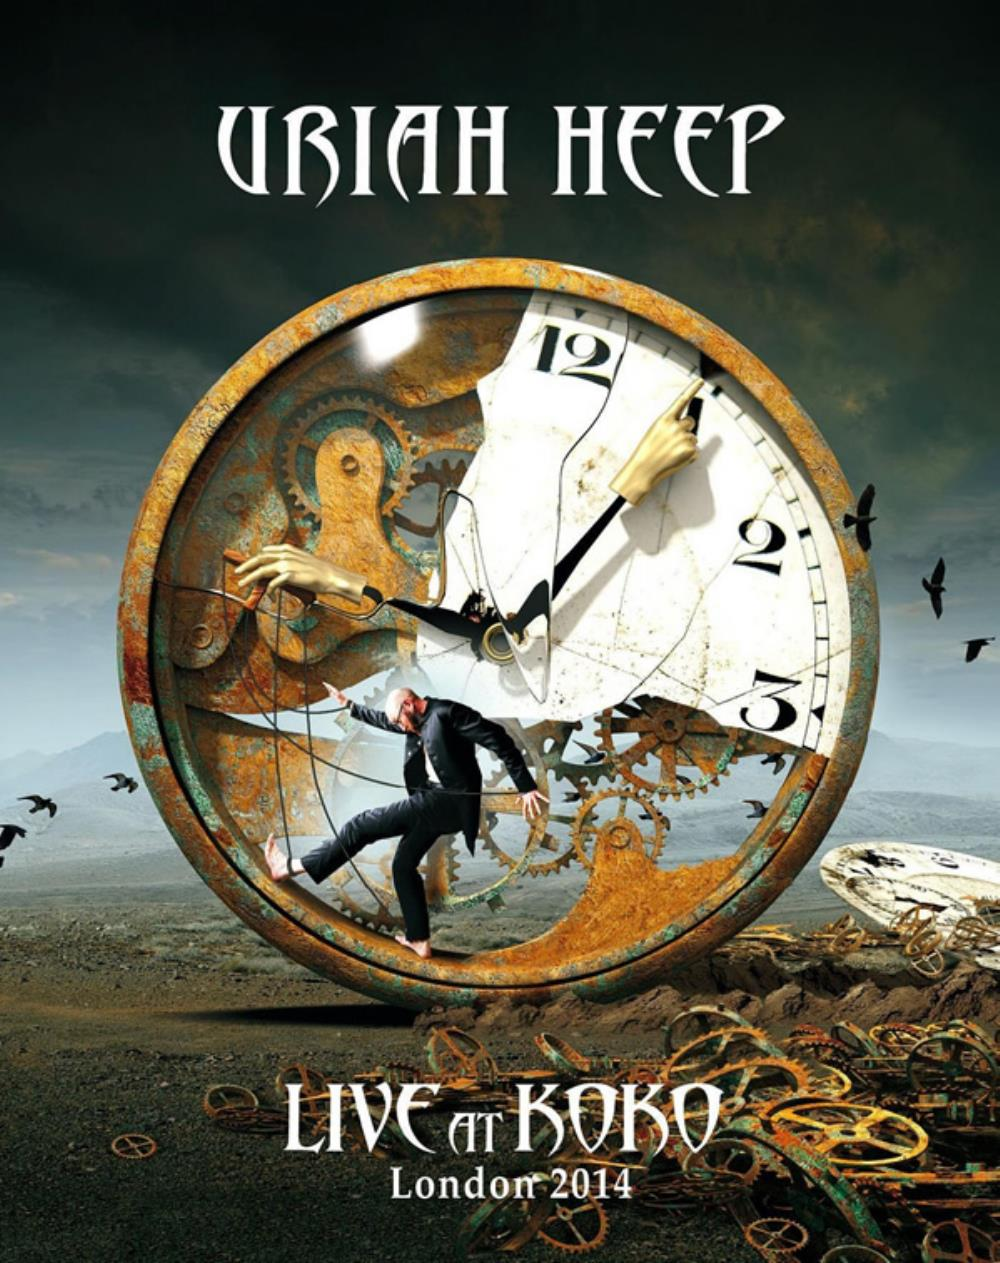 Uriah Heep - Live At Koko - London 2014 DVD (album) cover